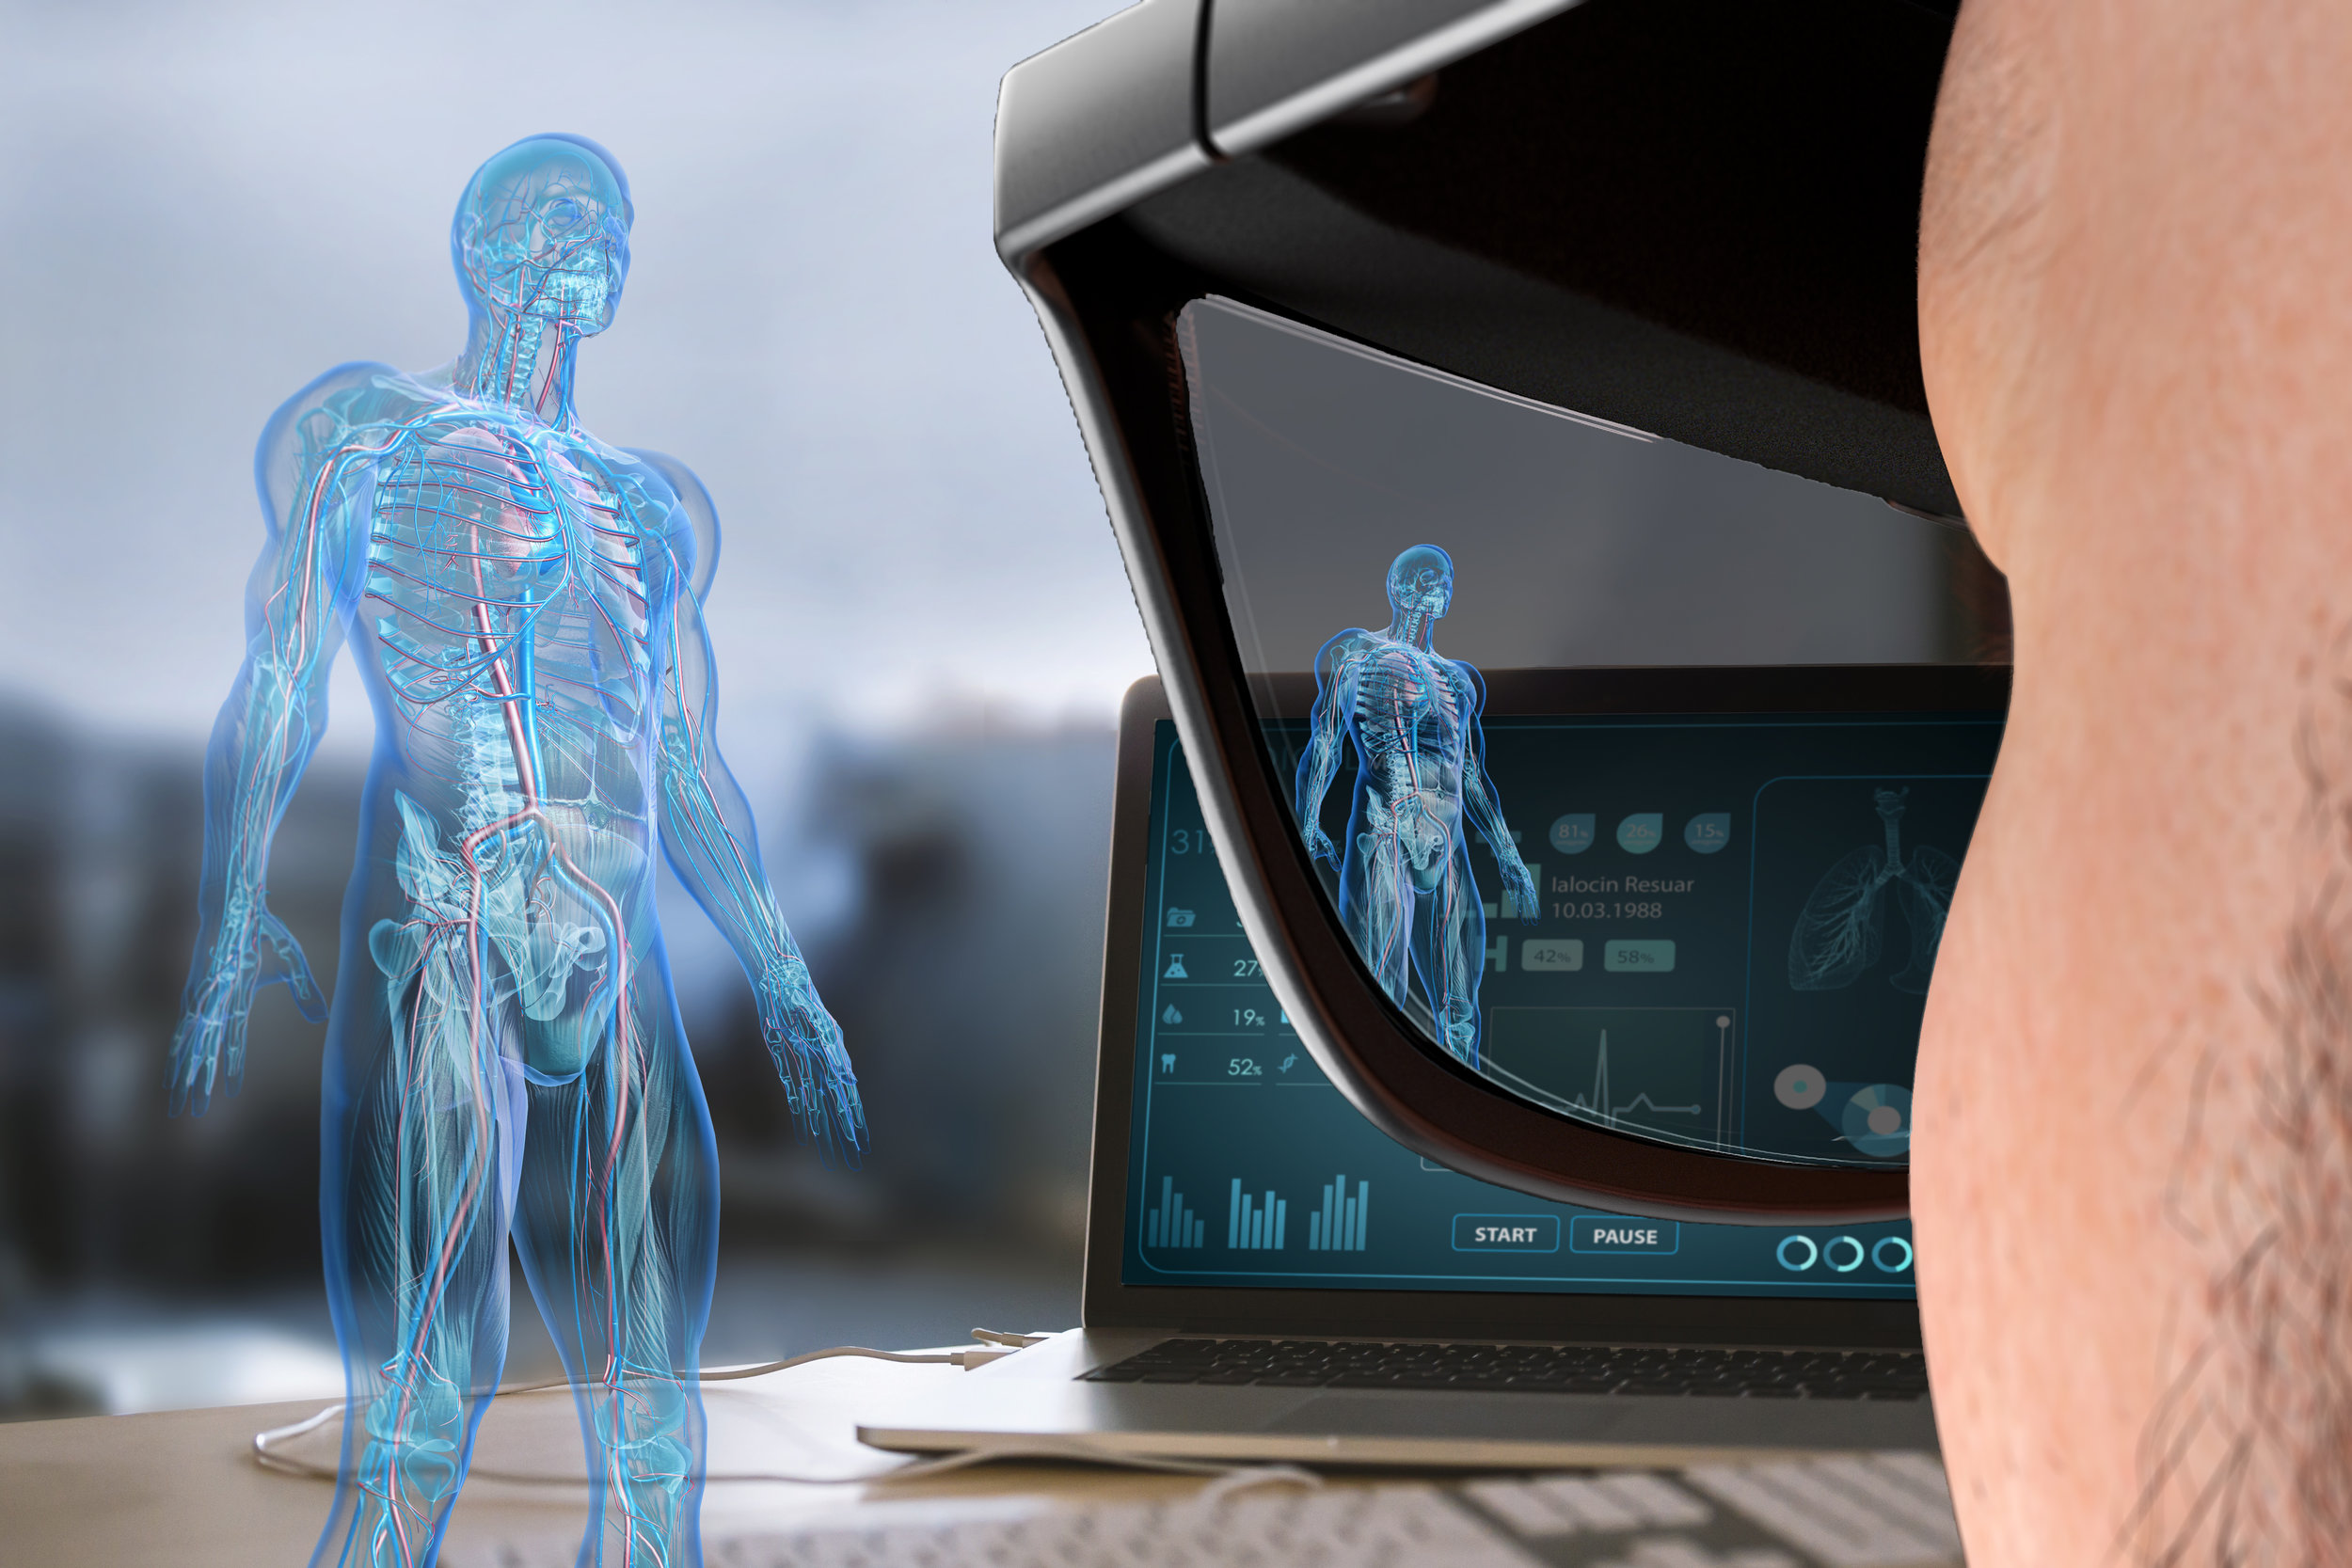 Simulated view of a human body diagnostic view as seen through the men's concept WaveOptics glasses